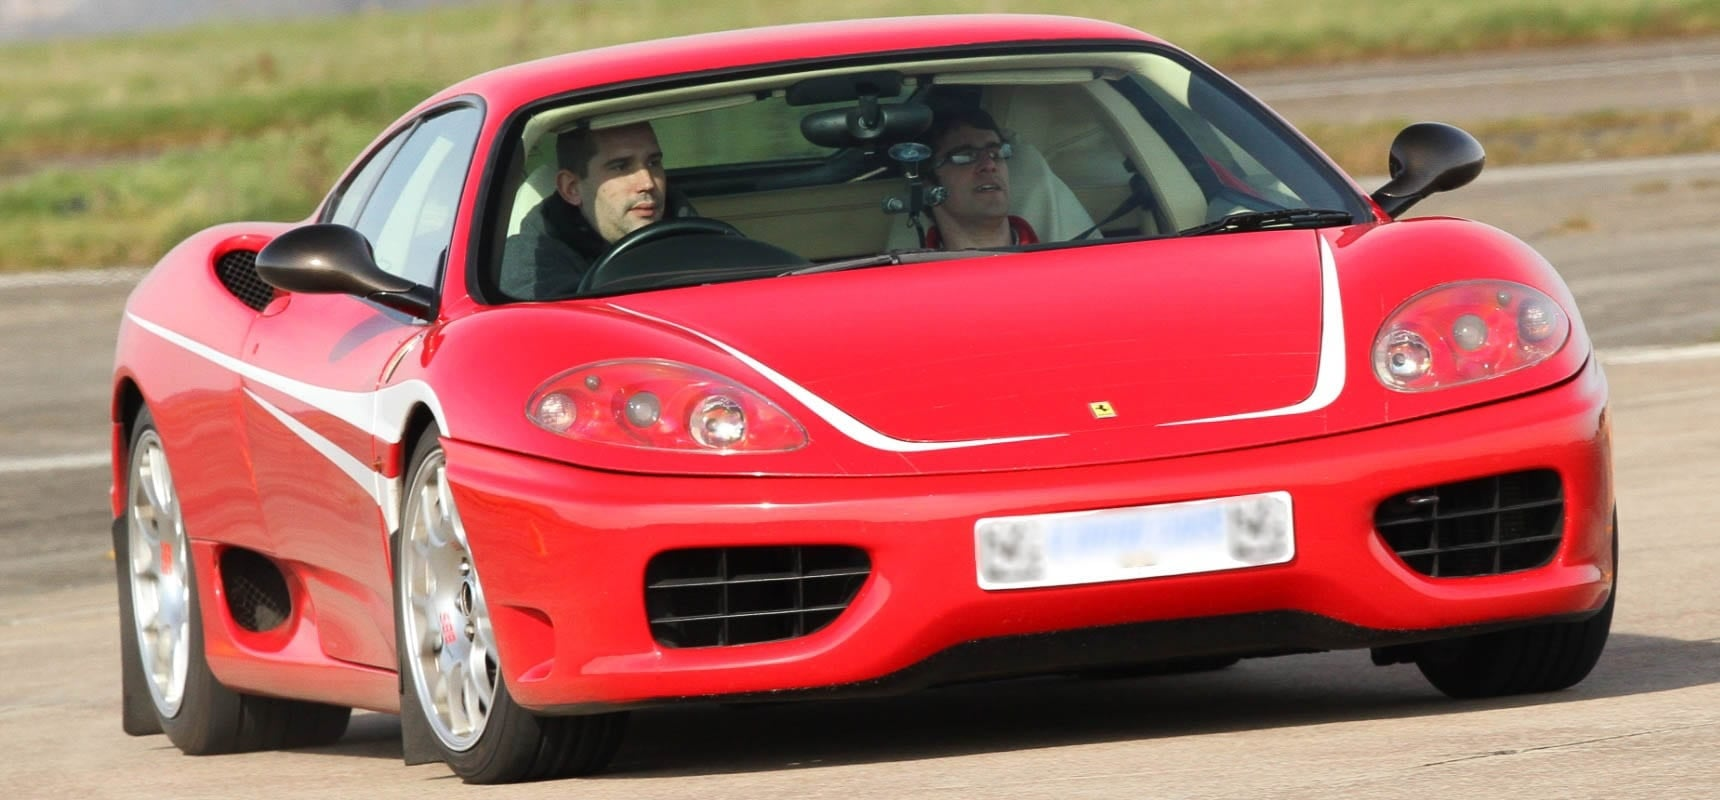 Ferrari Driving Demo - Oxfordshire-3